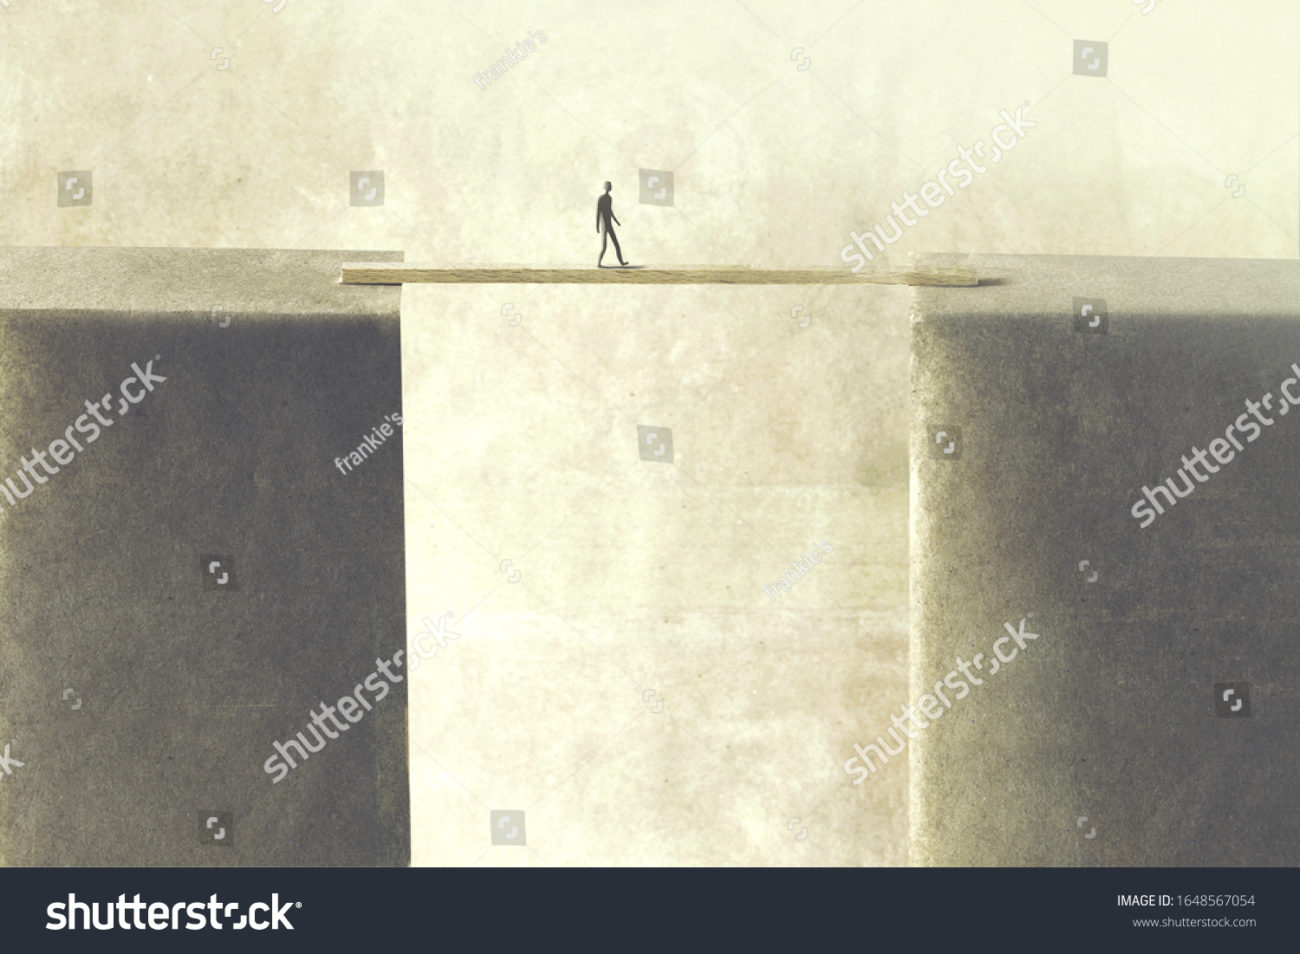 stock-photo-man-reaching-the-other-side-crossing-bridge-1648567054